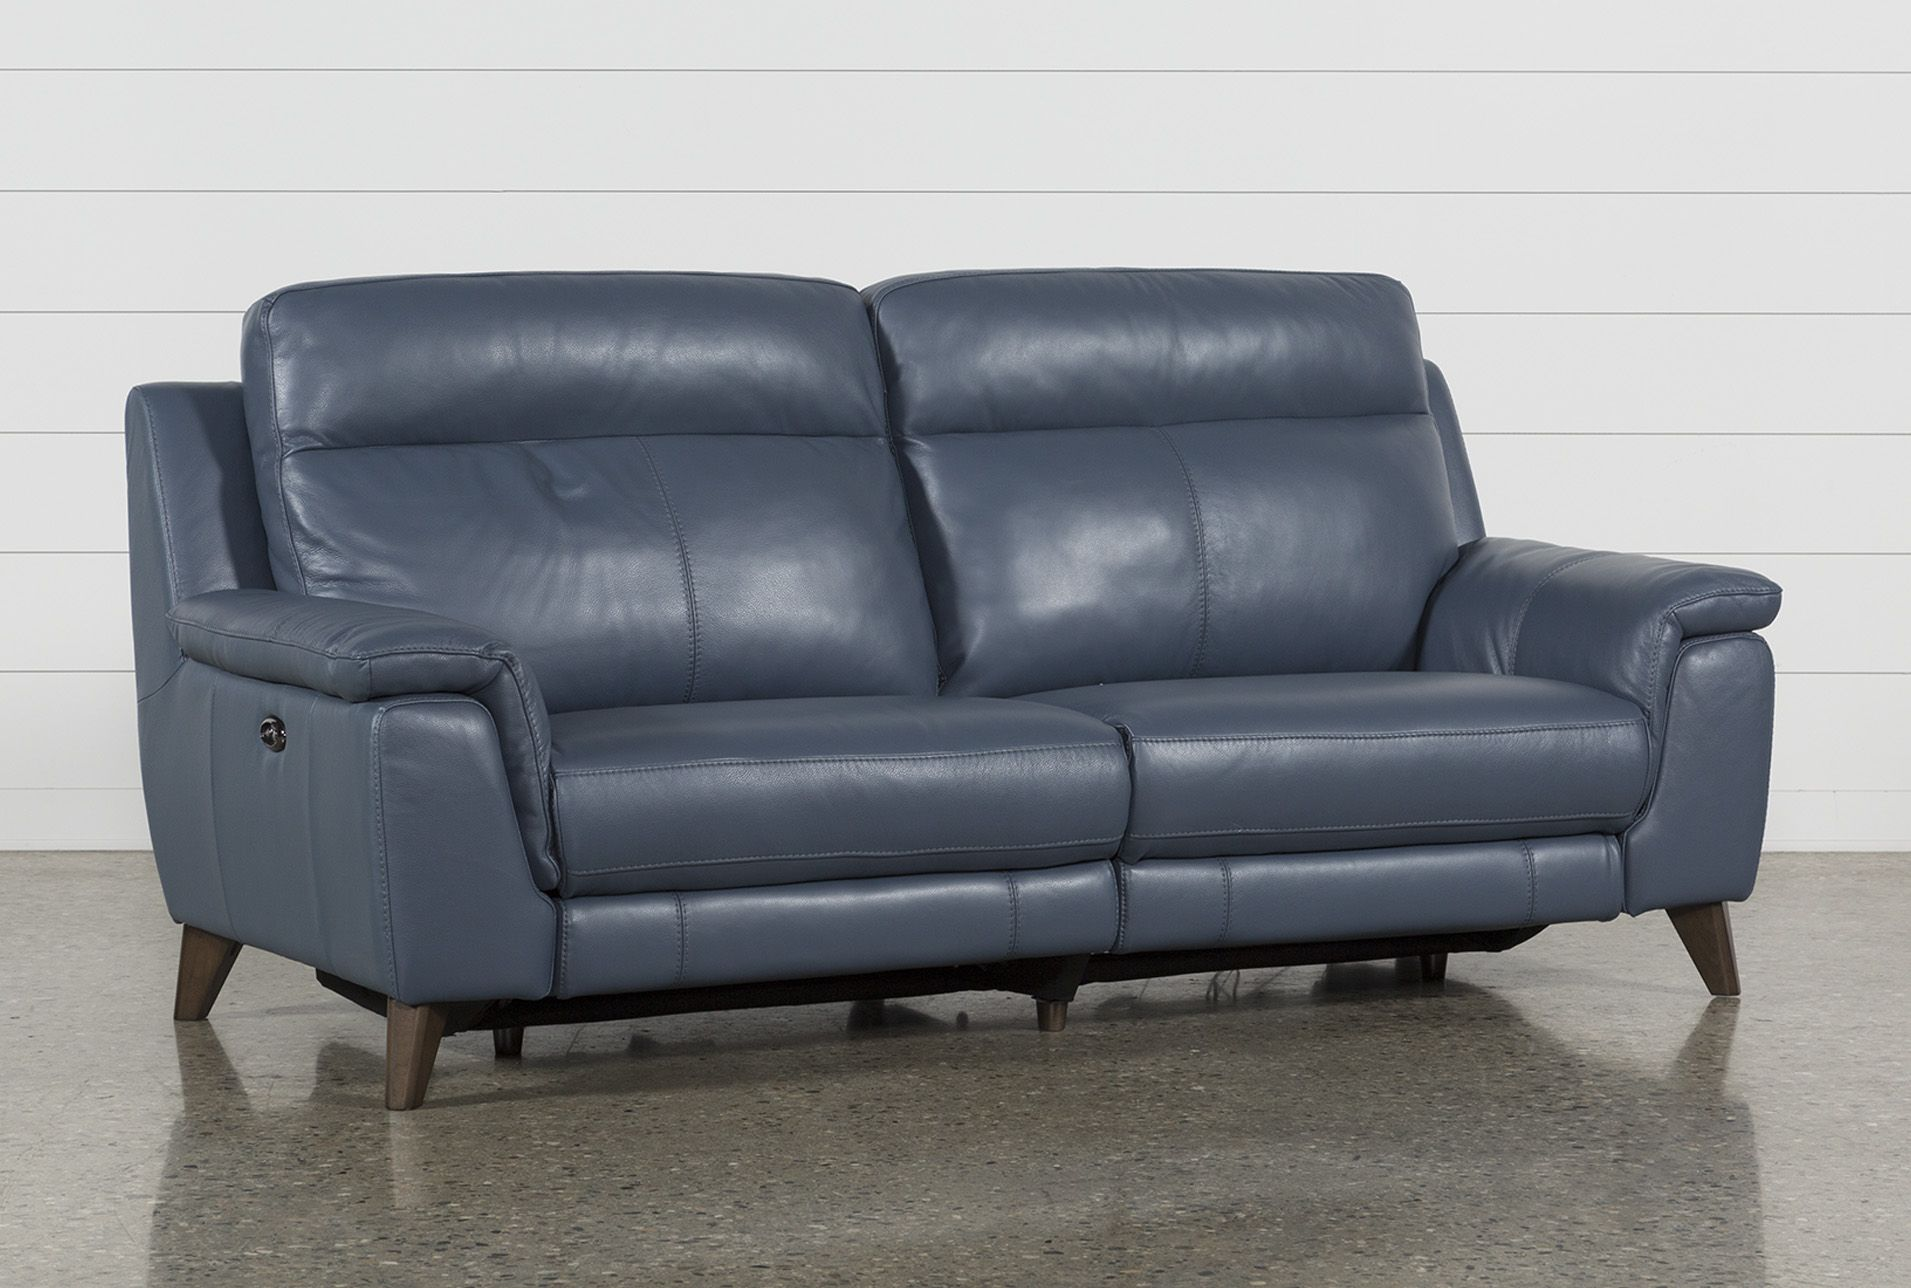 Incredible Dual Power Reclining Sofa With Usb Port Moana Blue 1095 Short Links Chair Design For Home Short Linksinfo